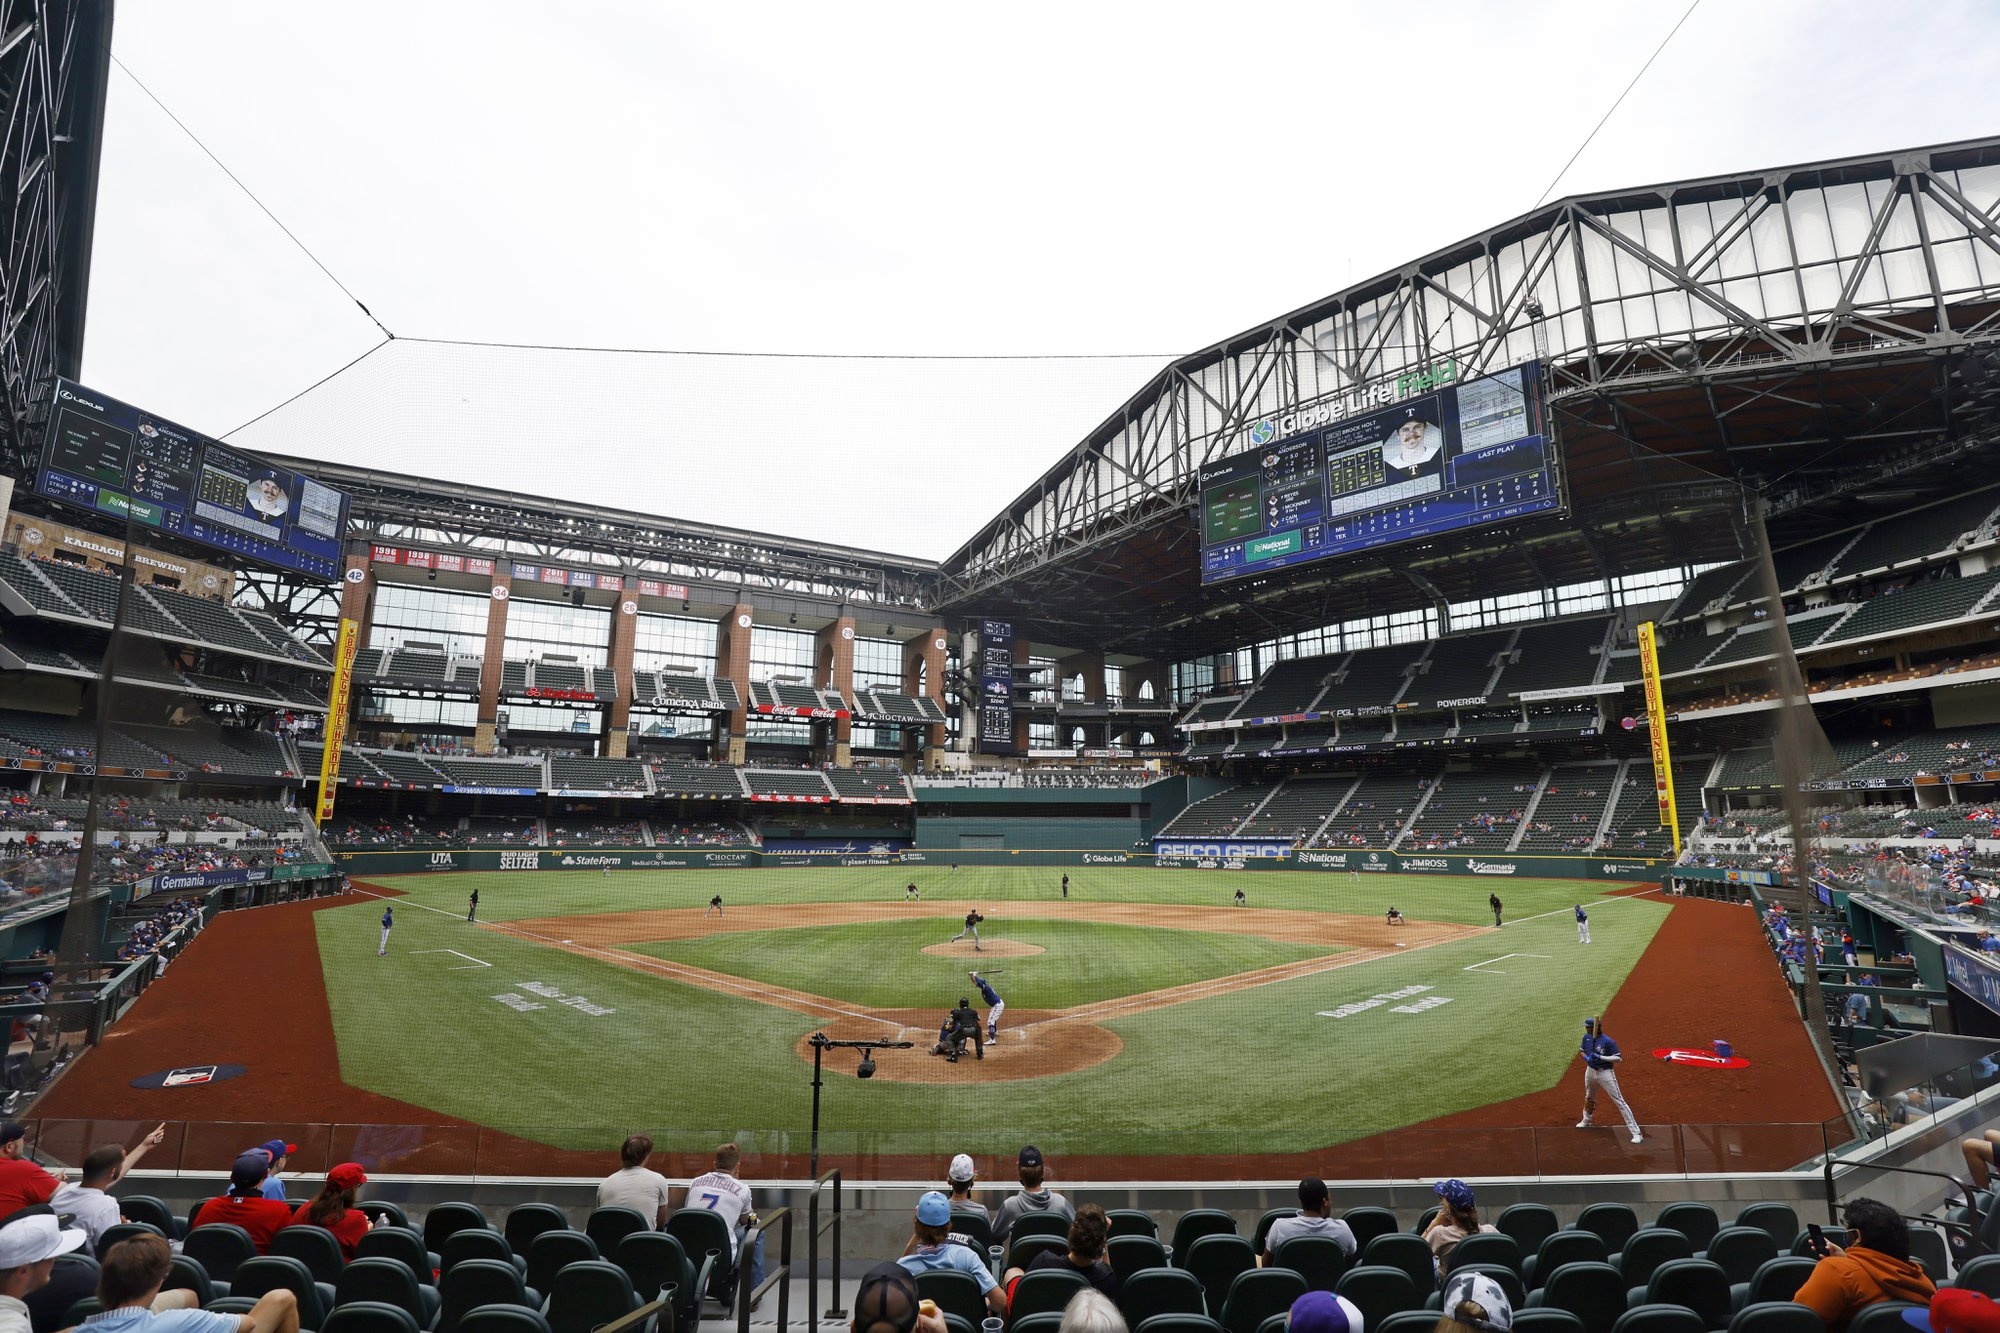 The Texas Rangers and the Milwaukee Brewers play a preseason baseball game at Globe Life Field, Tuesday, March 30, 2021, in Arlington, Texas. (AP Photo/Michael Ainsworth)